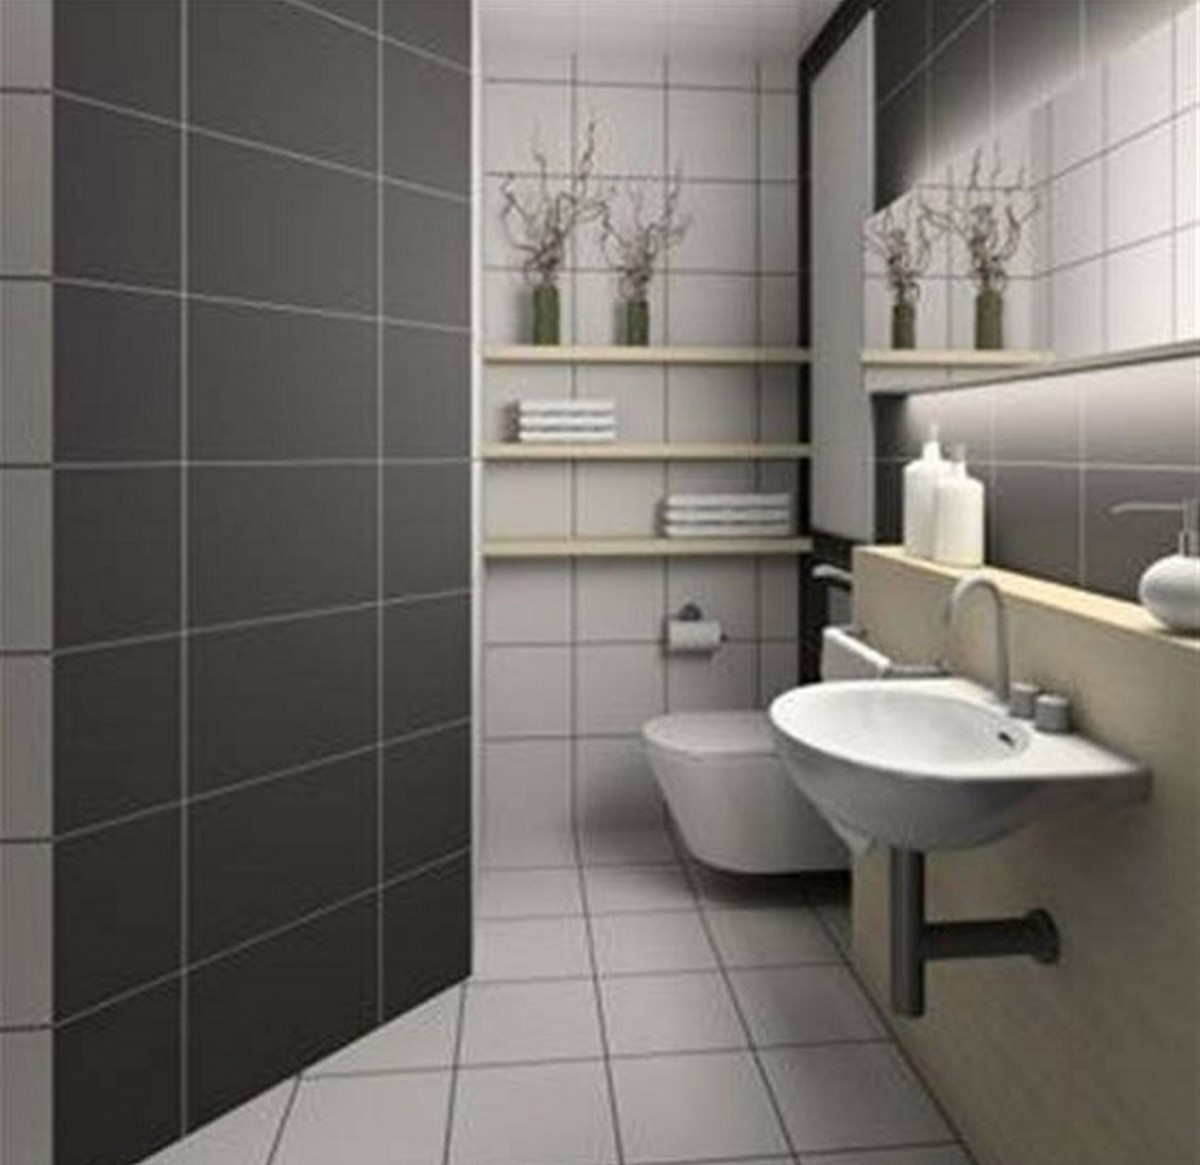 Exceptionnel 1 Color Ideas For Bathrooms Grey Color Bathroom   2c3b317e4431ed300bcc35a1d491b73d 6a00d8341dabcb53ef017d40d60d7b970c ...